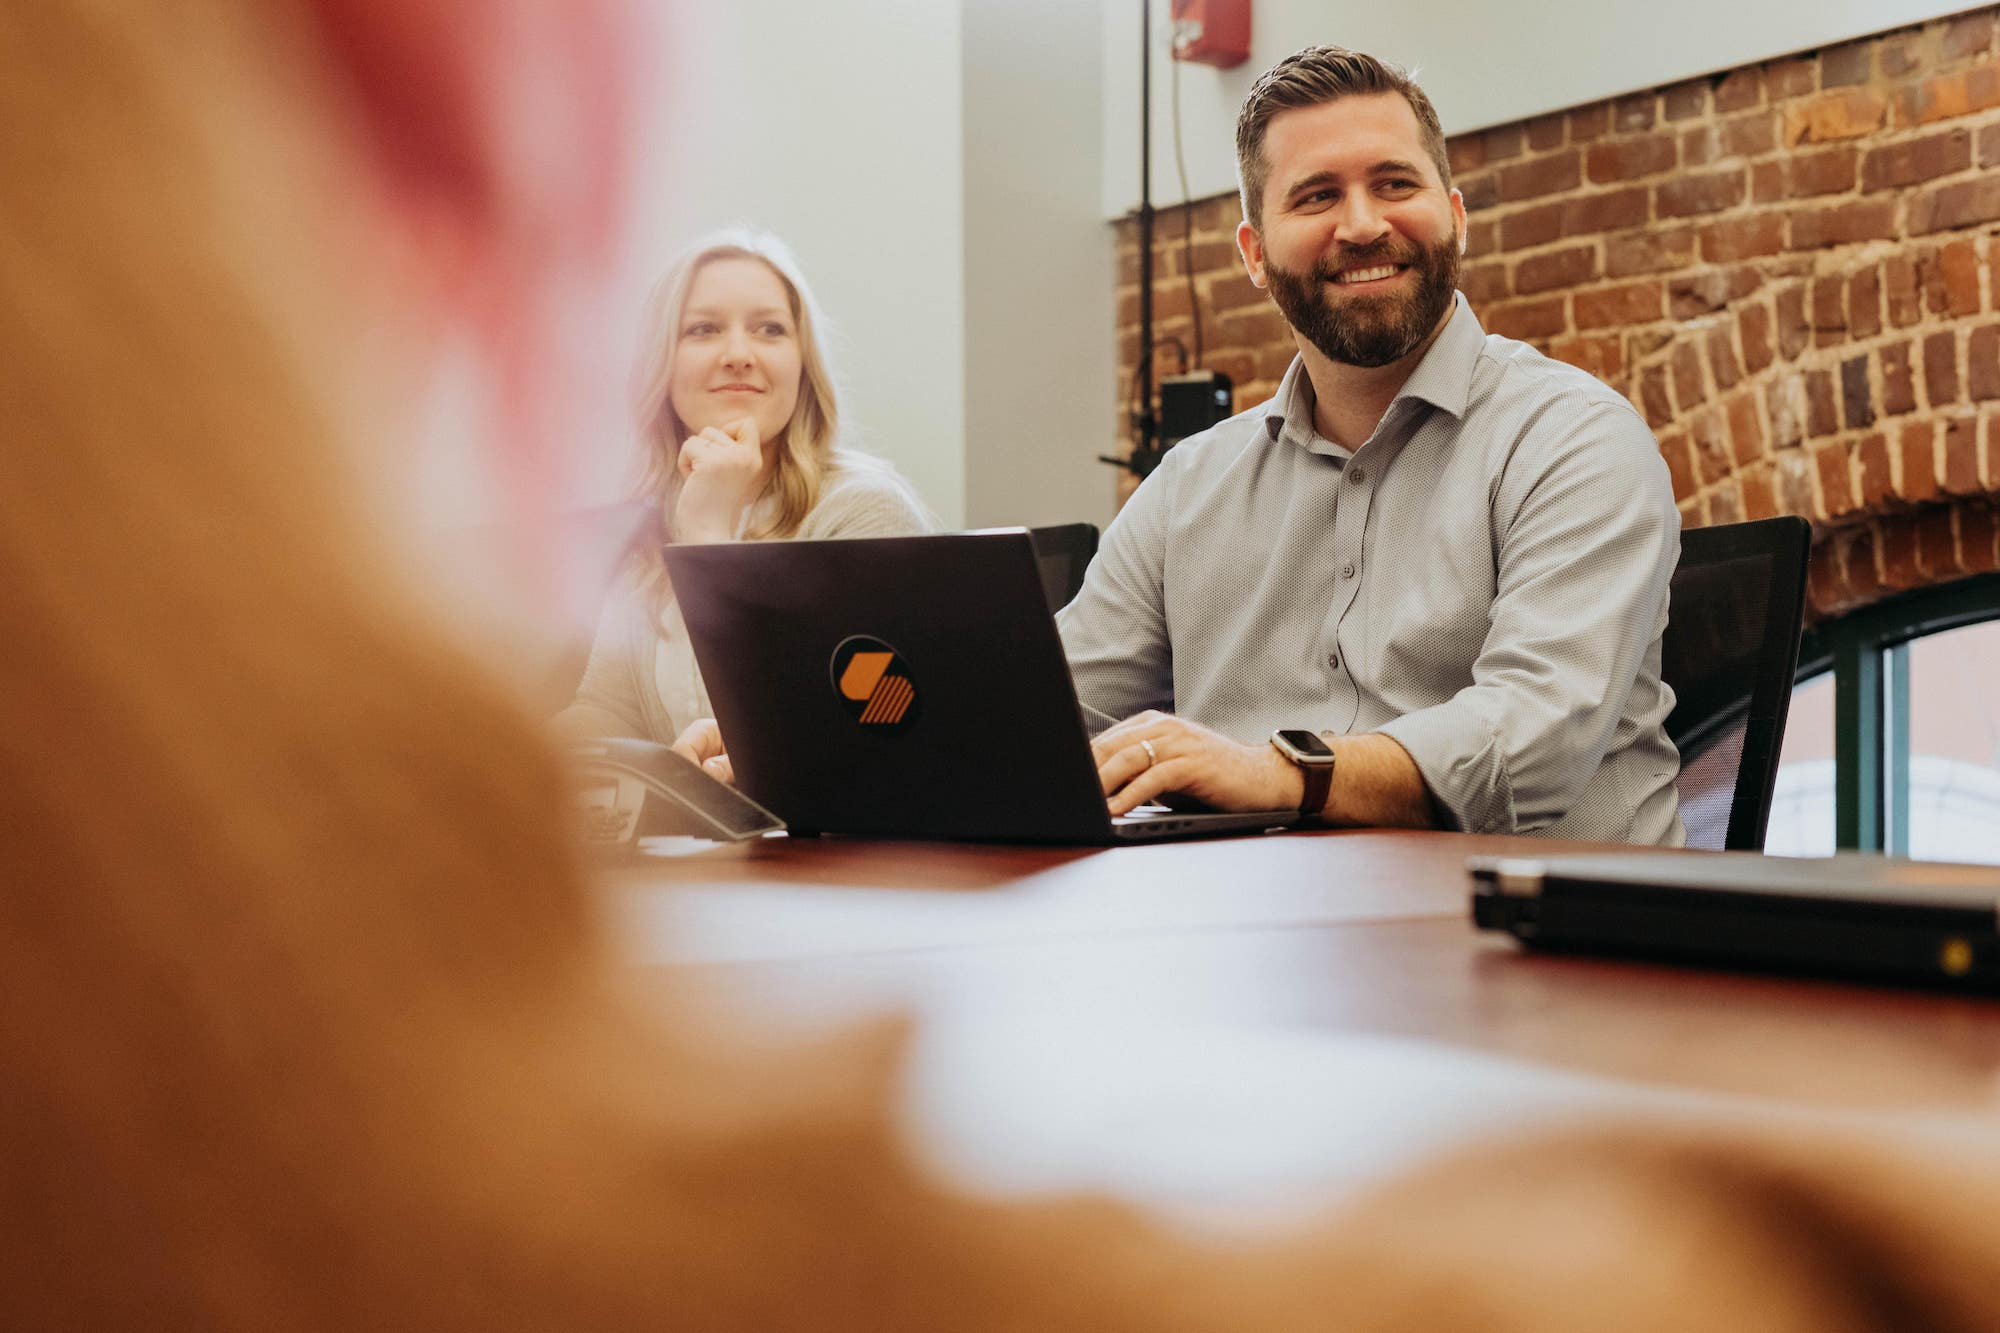 A Steam Logistics employee smiles while seated in the conference room, his laptop in front of him.